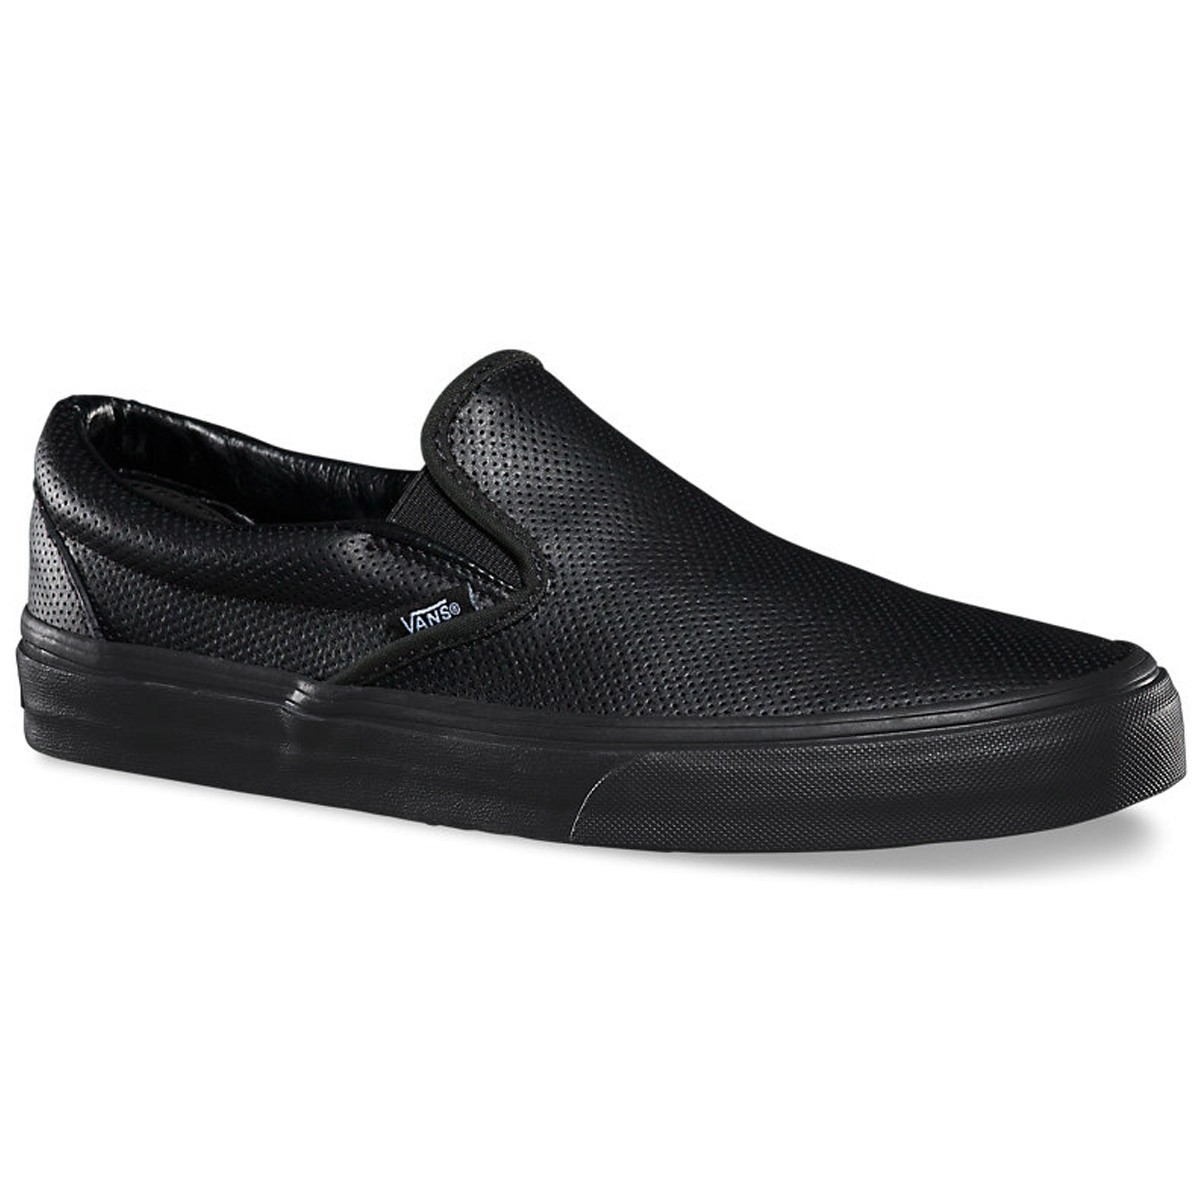 leather vans shoes